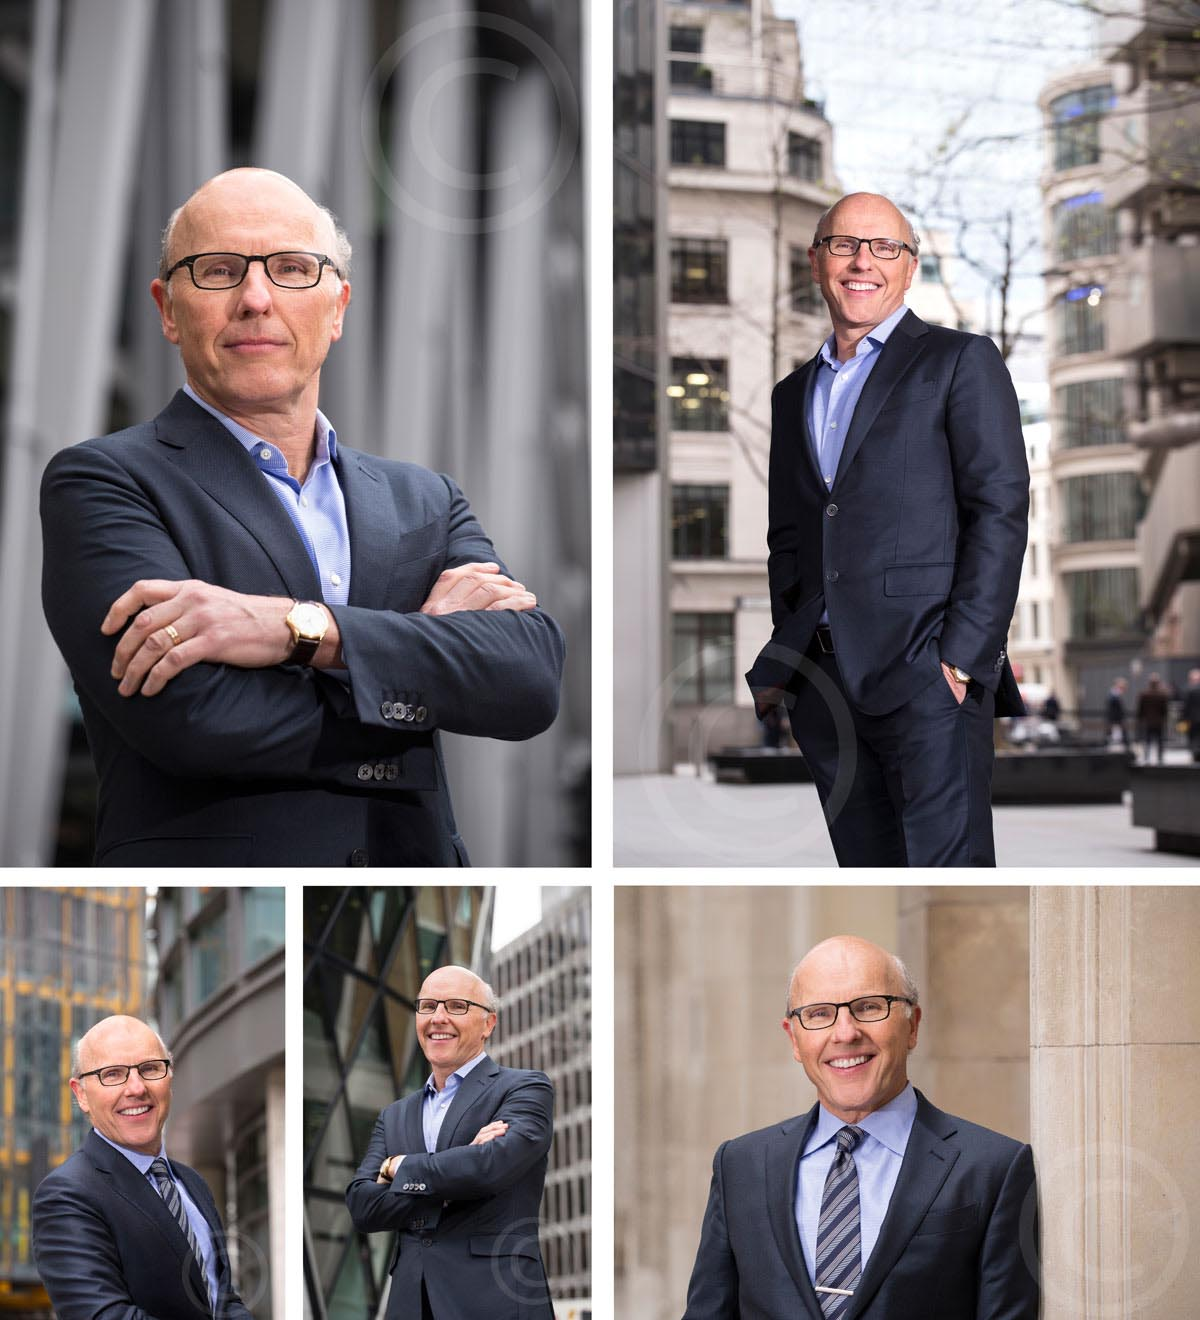 Whiteoak-davidmccourt-london-yorkshire-corporate-business-portraits-photography